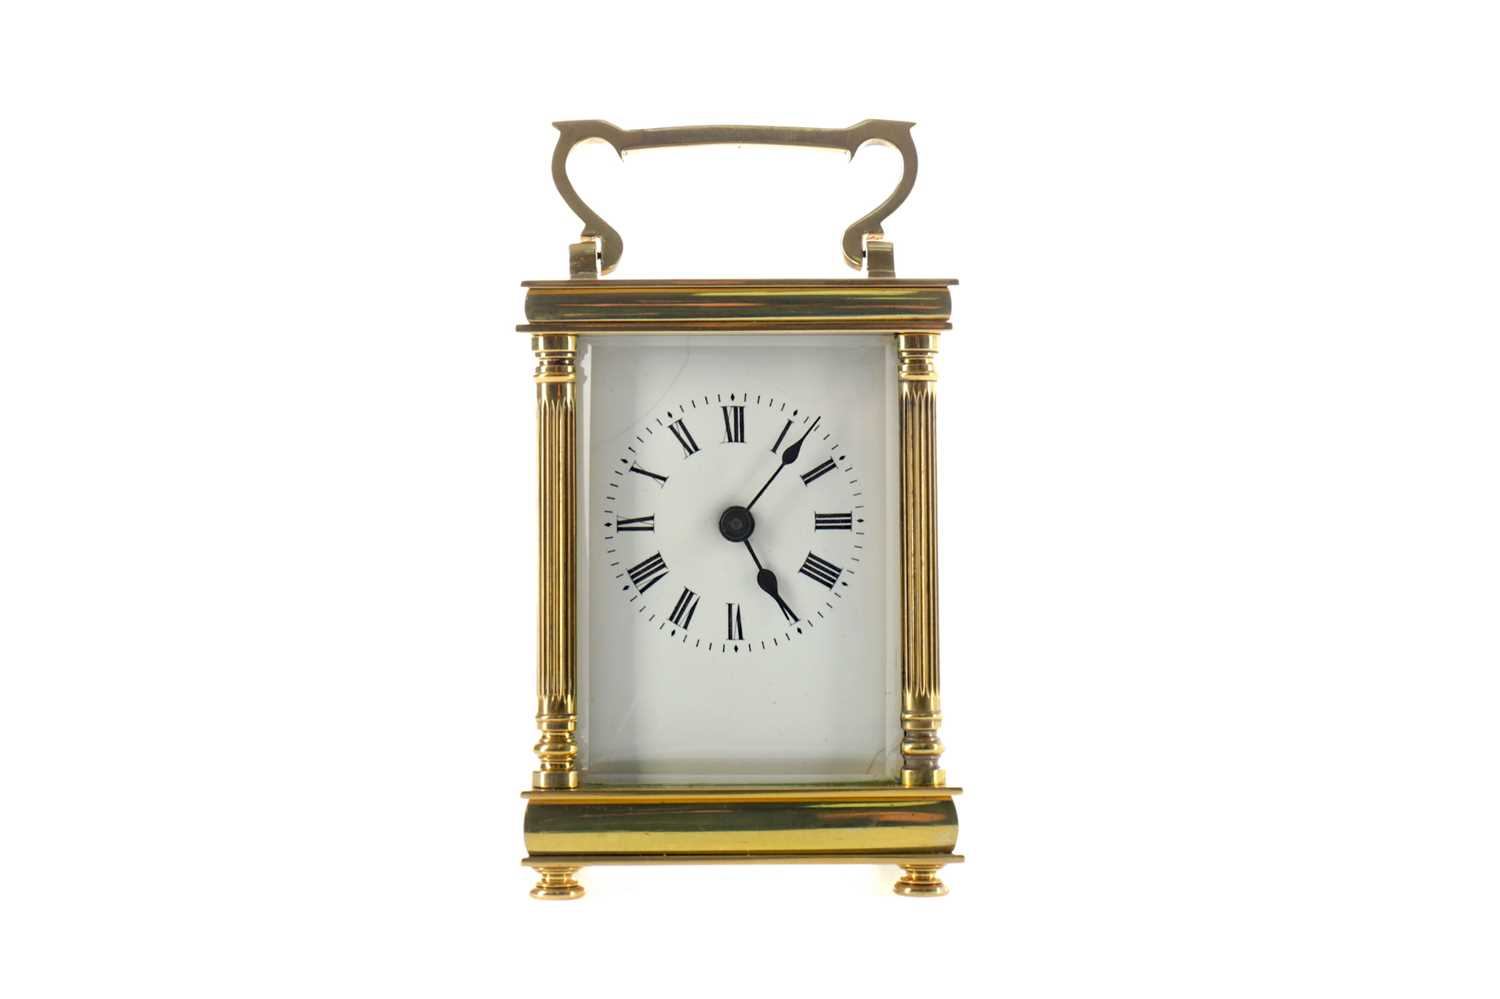 Lot 1741 - AN EARLY 20TH CENTURY CARRIAGE CLOCK